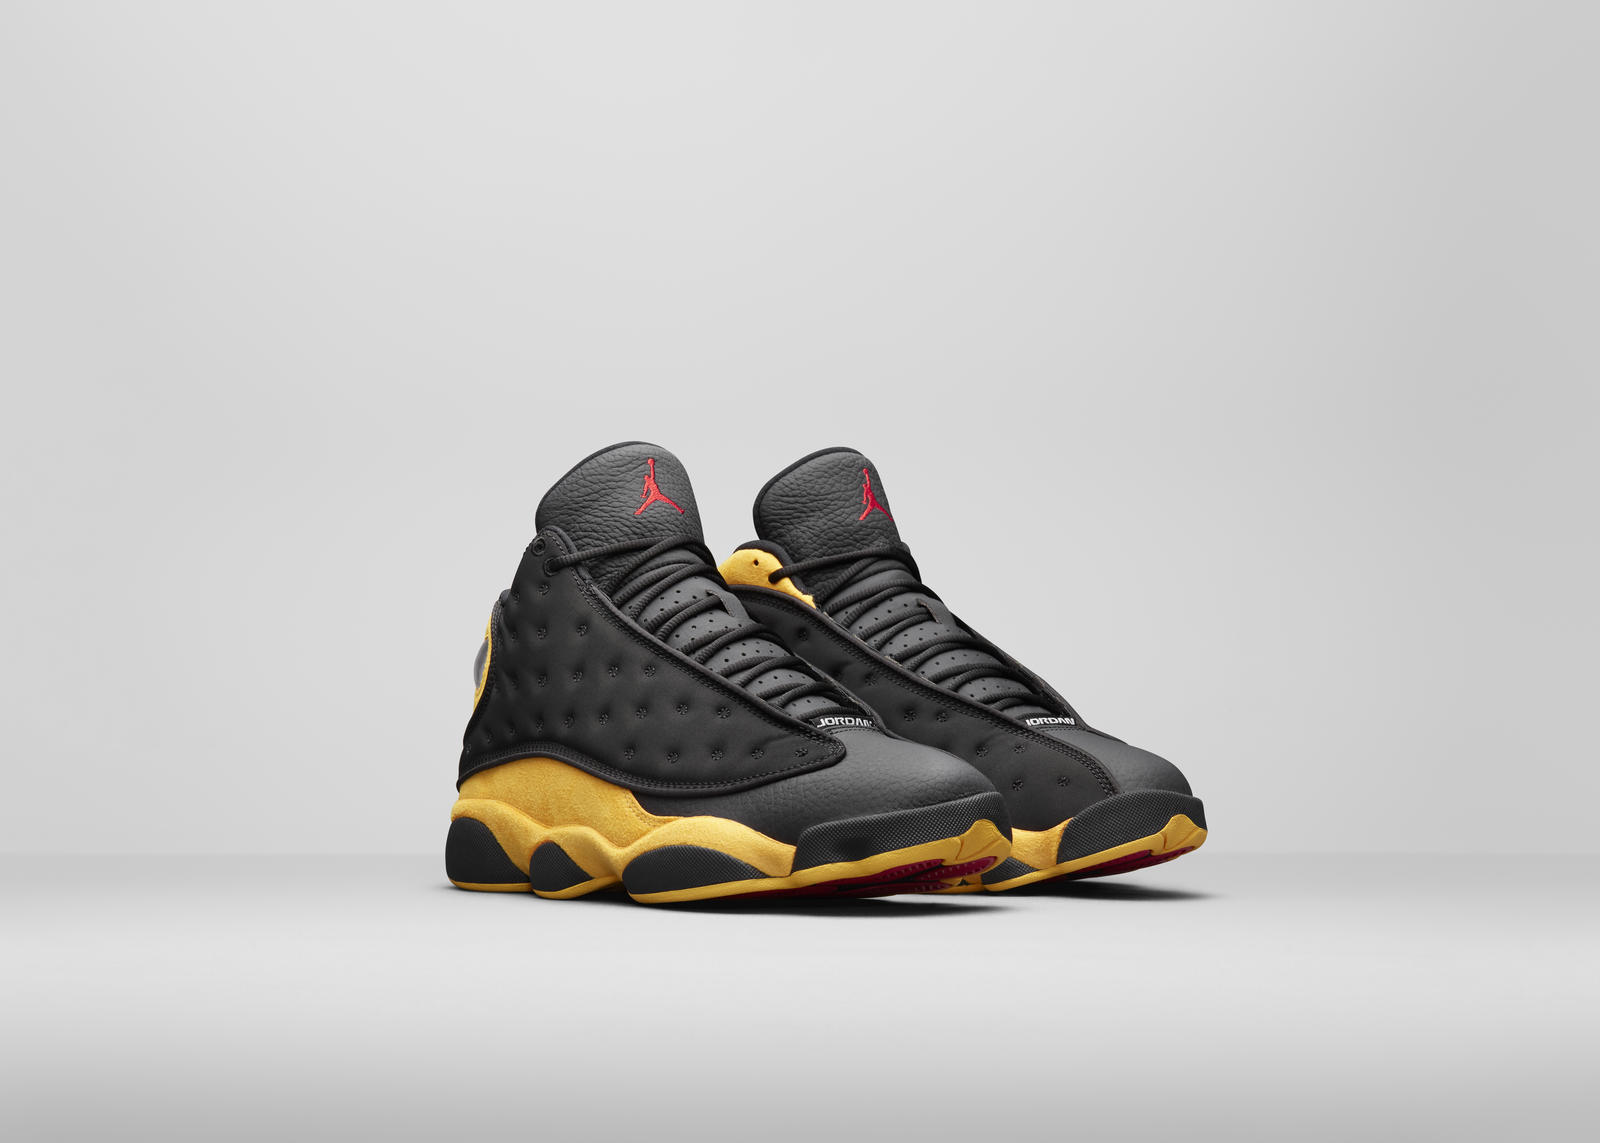 ebe5781295c Jordan Brand Fall 2018 Preview 56. CARMELO ANTHONY AIR JORDAN XIII CLASS OF  2002: The Class Of 2002 Air Jordan XIII pays tribute to Carmelo Anthony's  high ...